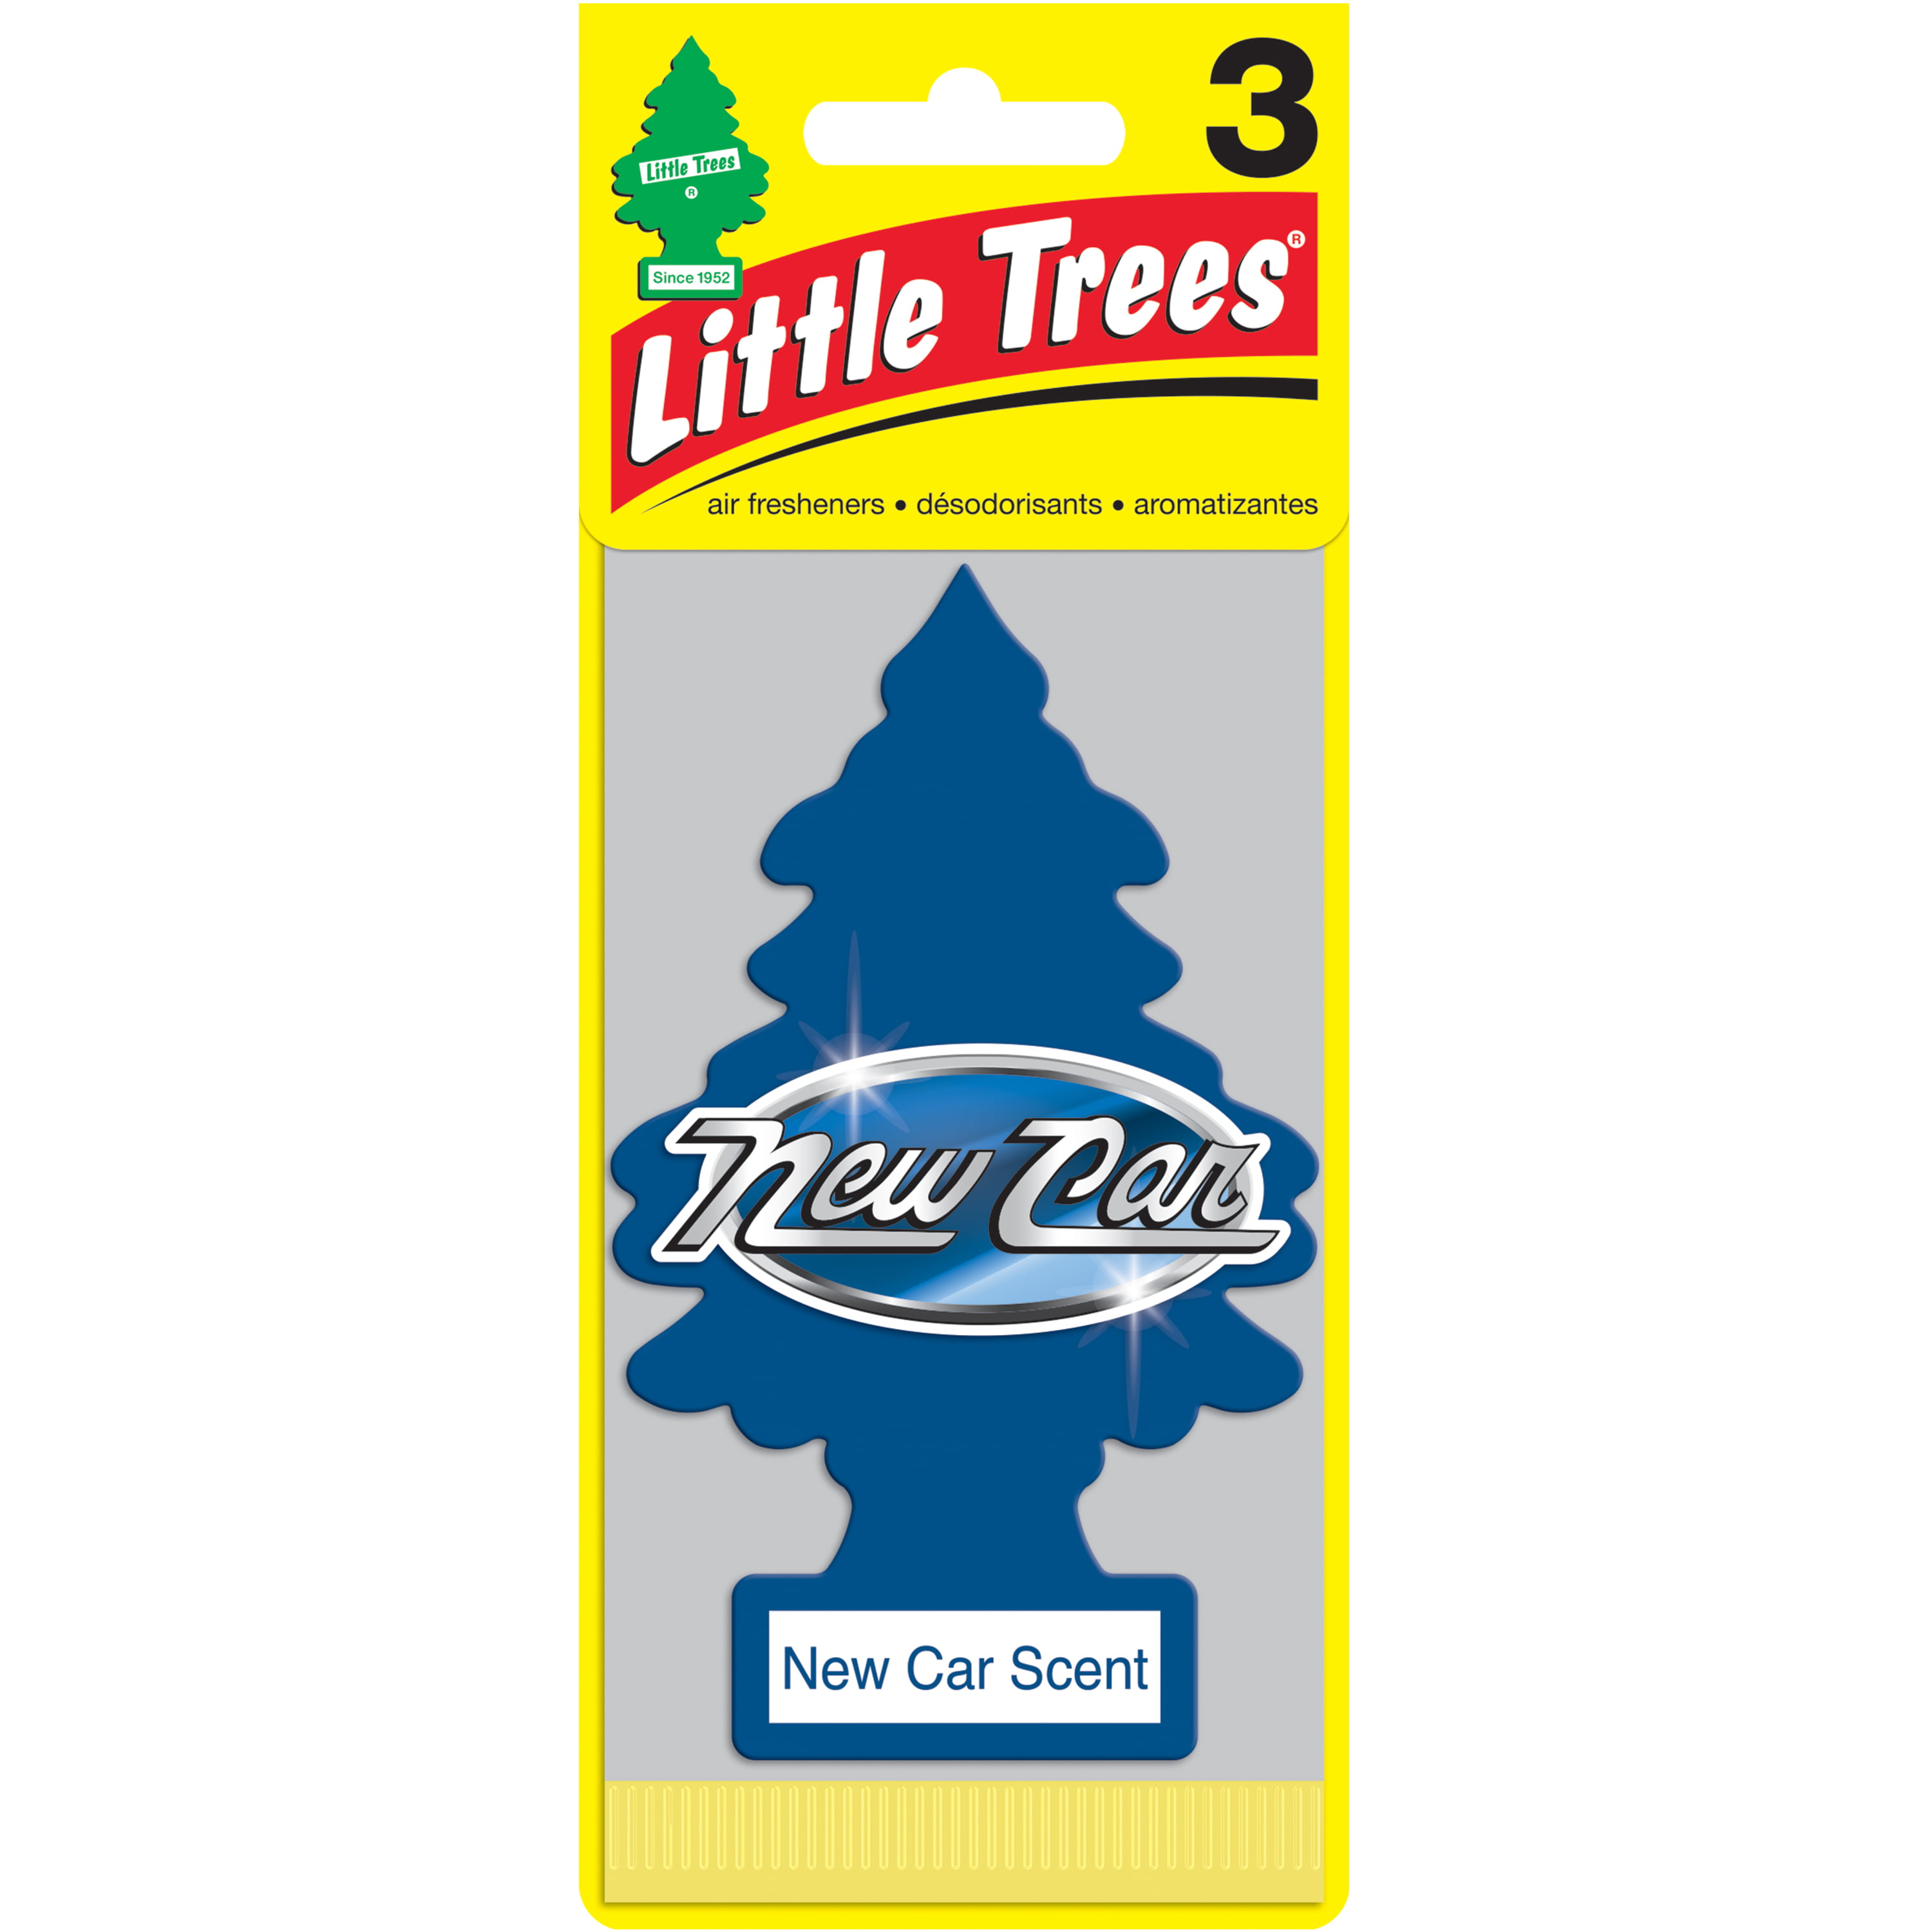 LITTLE TREES Air Fresheners New Car Scent 3-Pack